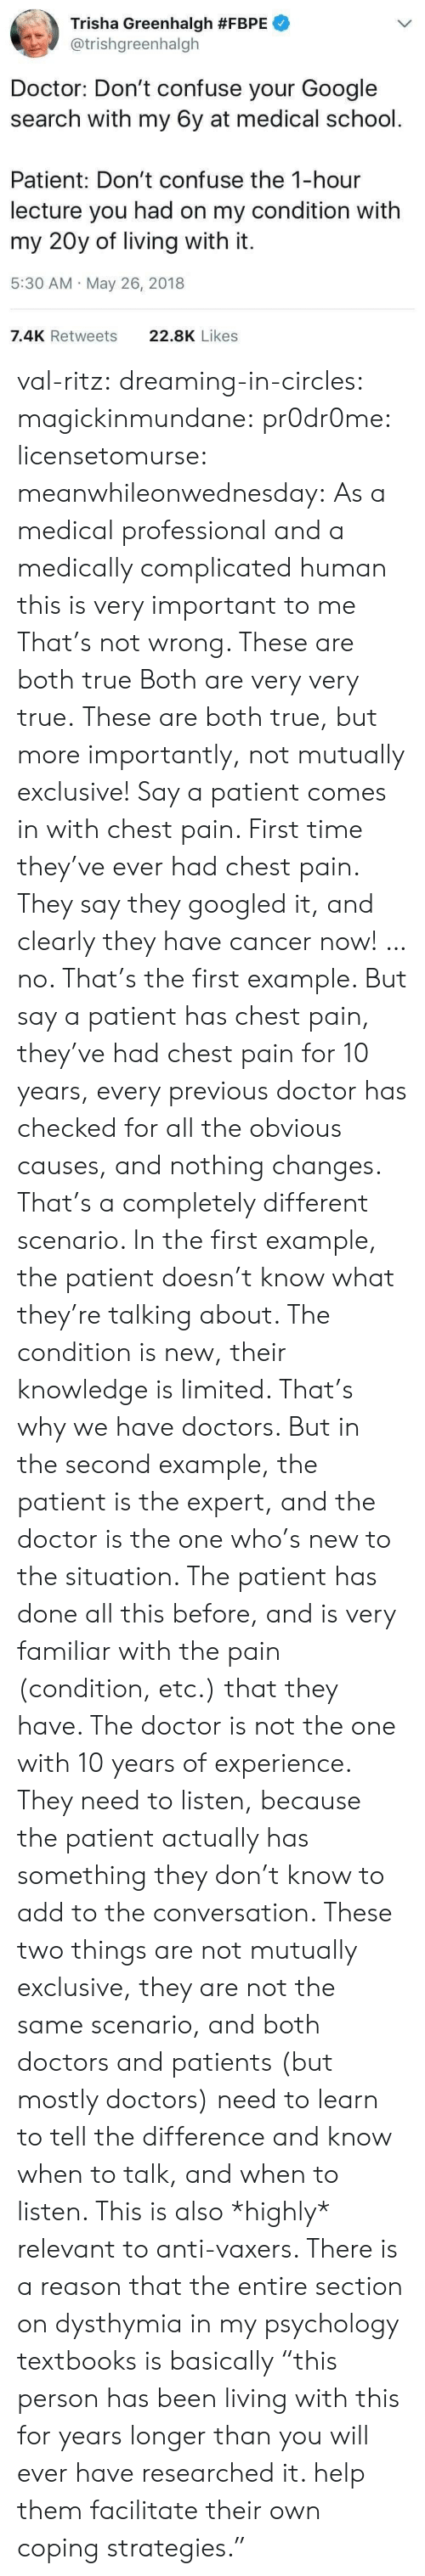 """Doctor, Gif, and Google: Trisha Greenhalgh #FBPE  @trishgreenhalgh  Doctor: Don't confuse your Google  search with my 6y at medical school.  Patient: Don't confuse the 1-hour  lecture you had on my condition with  my 20y of living with it.  5:30 AM May 26, 2018  7.4K Retweets  22.8K Likes val-ritz:  dreaming-in-circles:  magickinmundane:  pr0dr0me:   licensetomurse:   meanwhileonwednesday: As a medical professional and a medically complicated human this is very important to me That's not wrong.    These are both true   Both are very very true.   These are both true, but more importantly, not mutually exclusive!  Say a patient comes in with chest pain. First time they've ever had chest pain. They say they googled it, and clearly they have cancer now! …no. That's the first example.  But say a patient has chest pain, they've had chest pain for 10 years, every previous doctor has checked for all the obvious causes, and nothing changes.  That's a completely different scenario. In the first example, the patient doesn't know what they're talking about. The condition is new, their knowledge is limited. That's why we have doctors. But in the second example, the patient is the expert, and the doctor is the one who's new to the situation. The patient has done all this before, and is very familiar with the pain (condition, etc.) that they have. The doctor is not the one with 10 years of experience. They need to listen, because the patient actually has something they don't know to add to the conversation.  These two things are not mutually exclusive, they are not the same scenario, and both doctors and patients (but mostly doctors) need to learn to tell the difference and know when to talk, and when to listen.  This is also *highly* relevant to anti-vaxers.   There is a reason that the entire section on dysthymia in my psychology textbooks is basically """"this person has been living with this for years longer than you will ever have researched it. help them facilitate their own co"""